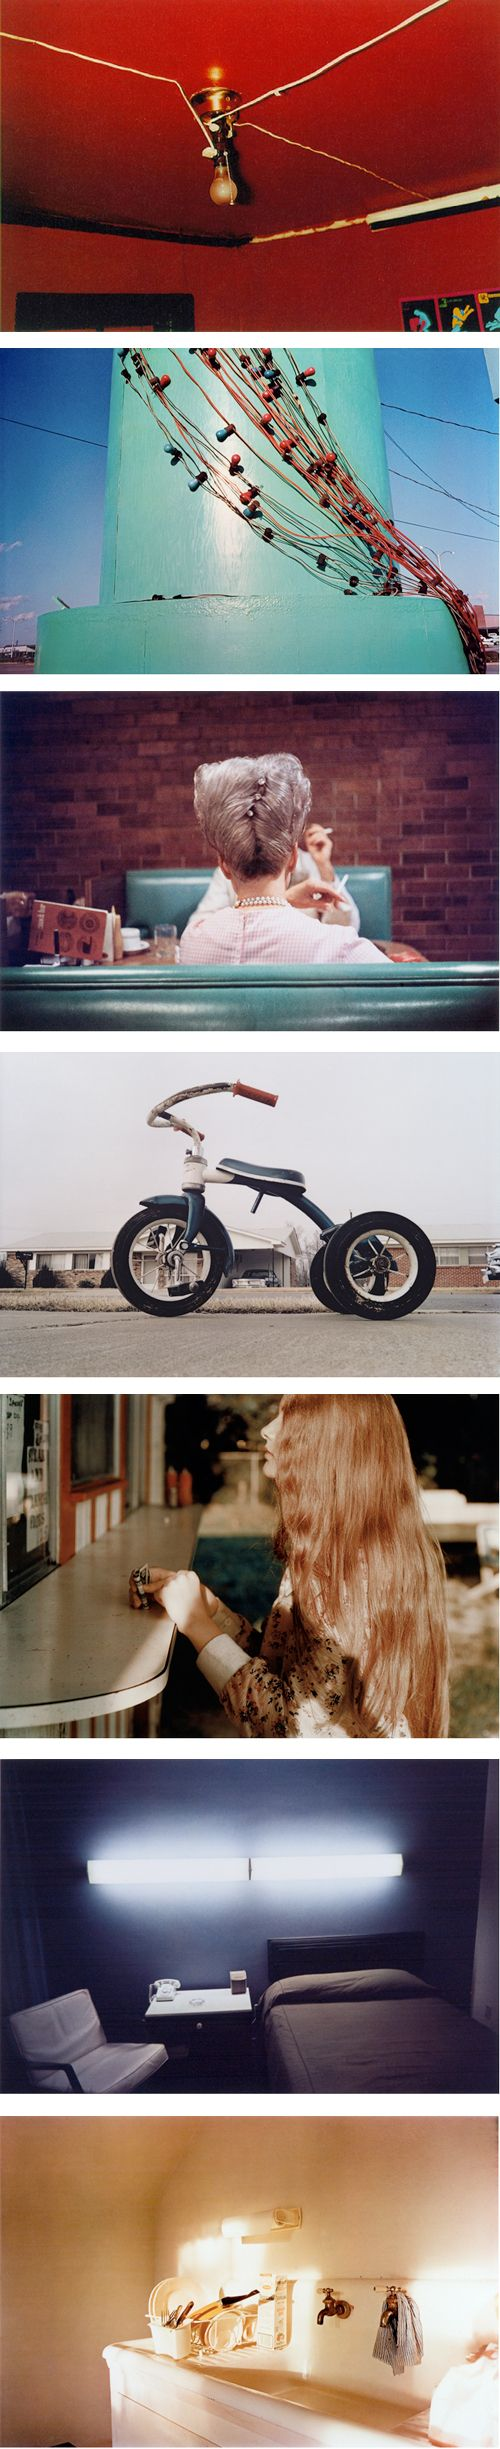 2. William Eggleston simple shots and his use of colour make his photography amazing